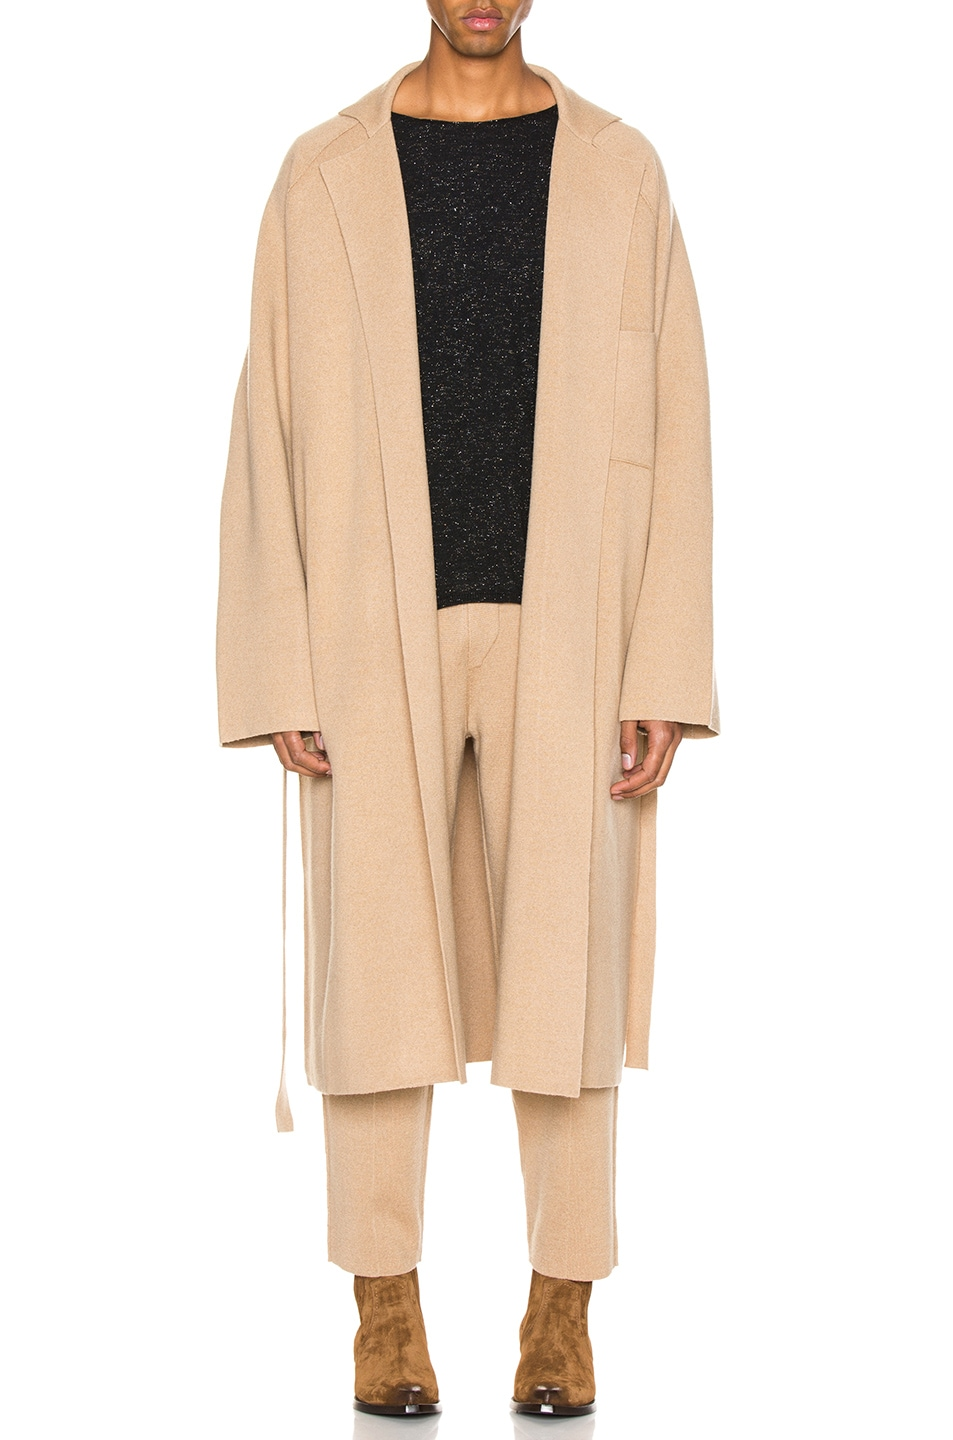 Image 1 of Haider Ackermann Knitted Coat in Invidia Camel